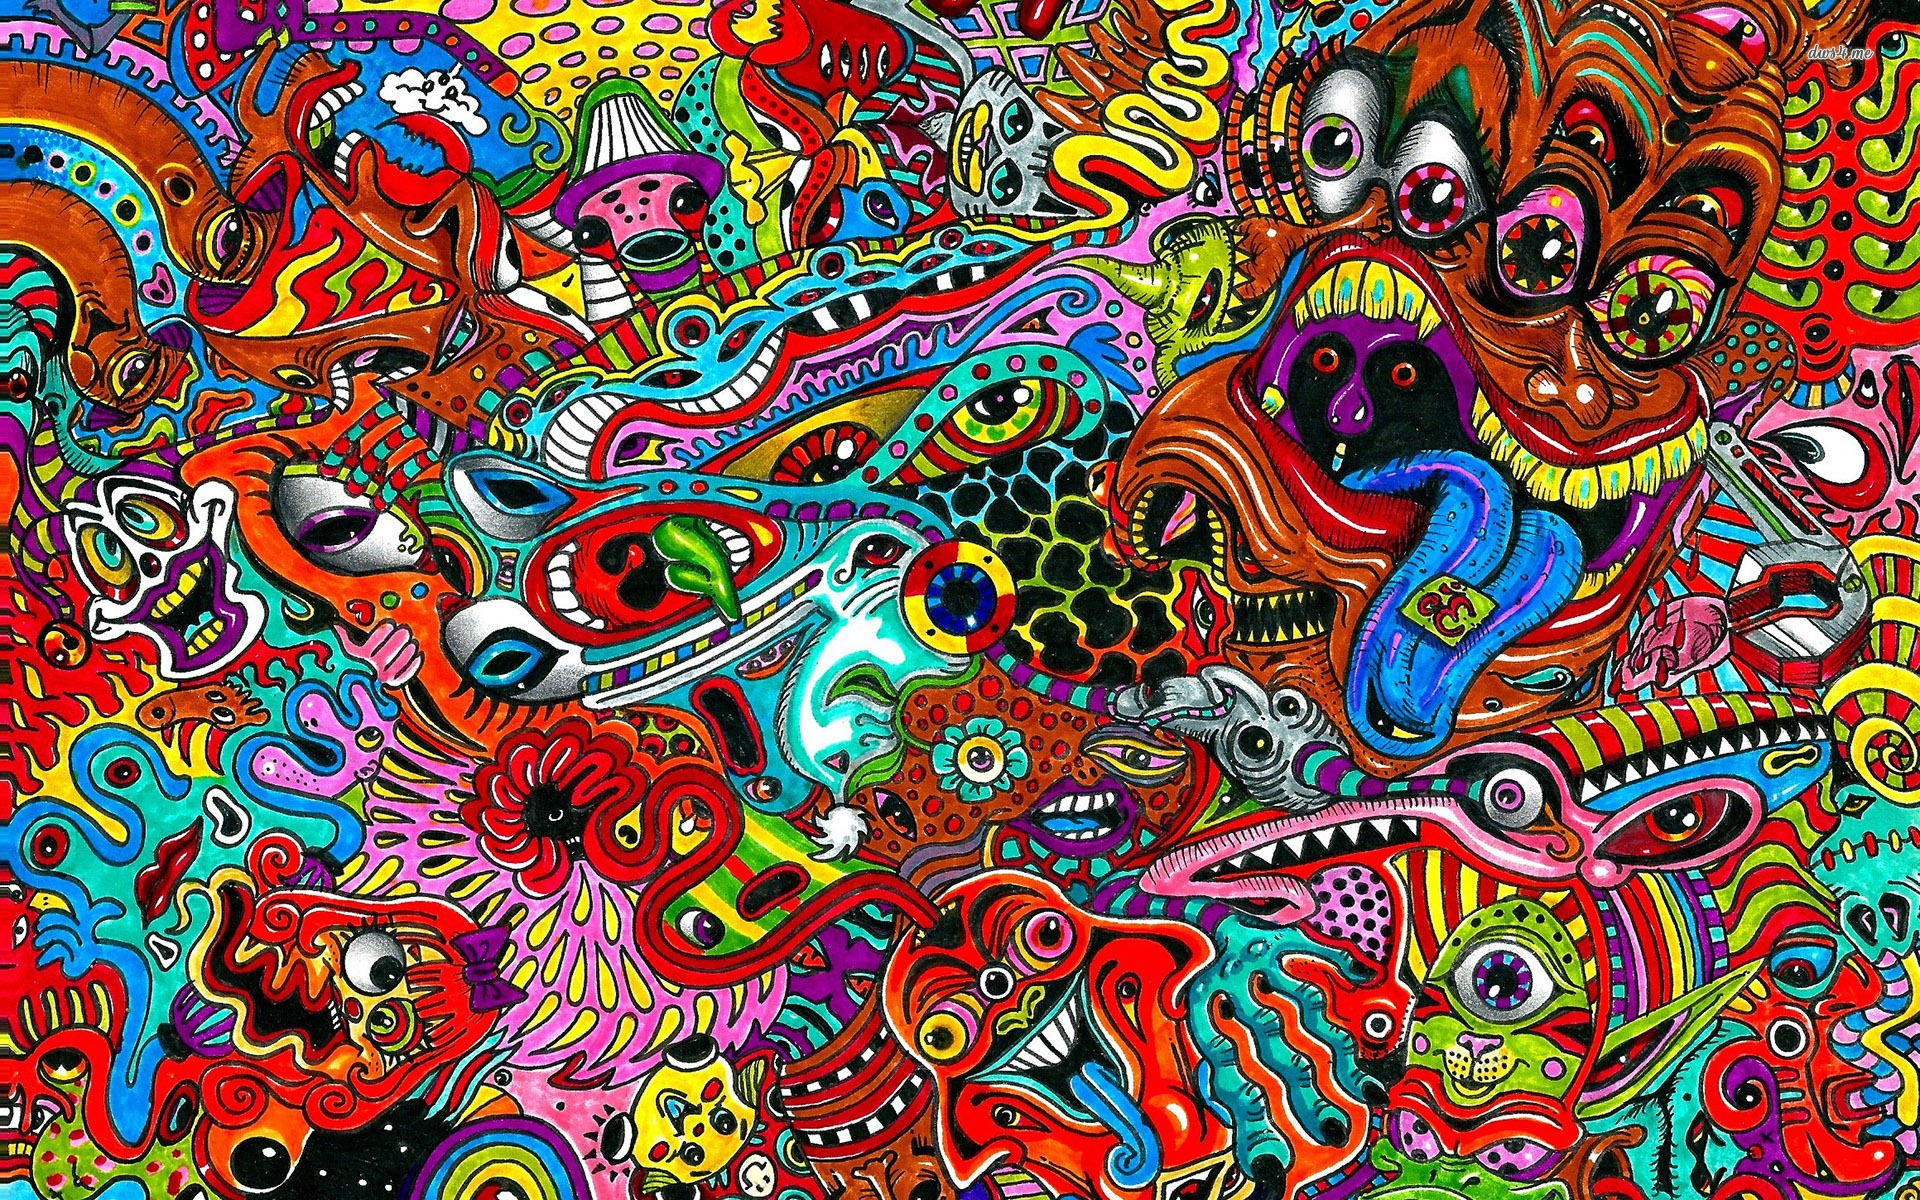 Fantastic Wallpaper Mac Trippy - 111514-psychedelic-backgrounds-1920x1200-for-ios  Snapshot_30784.jpg